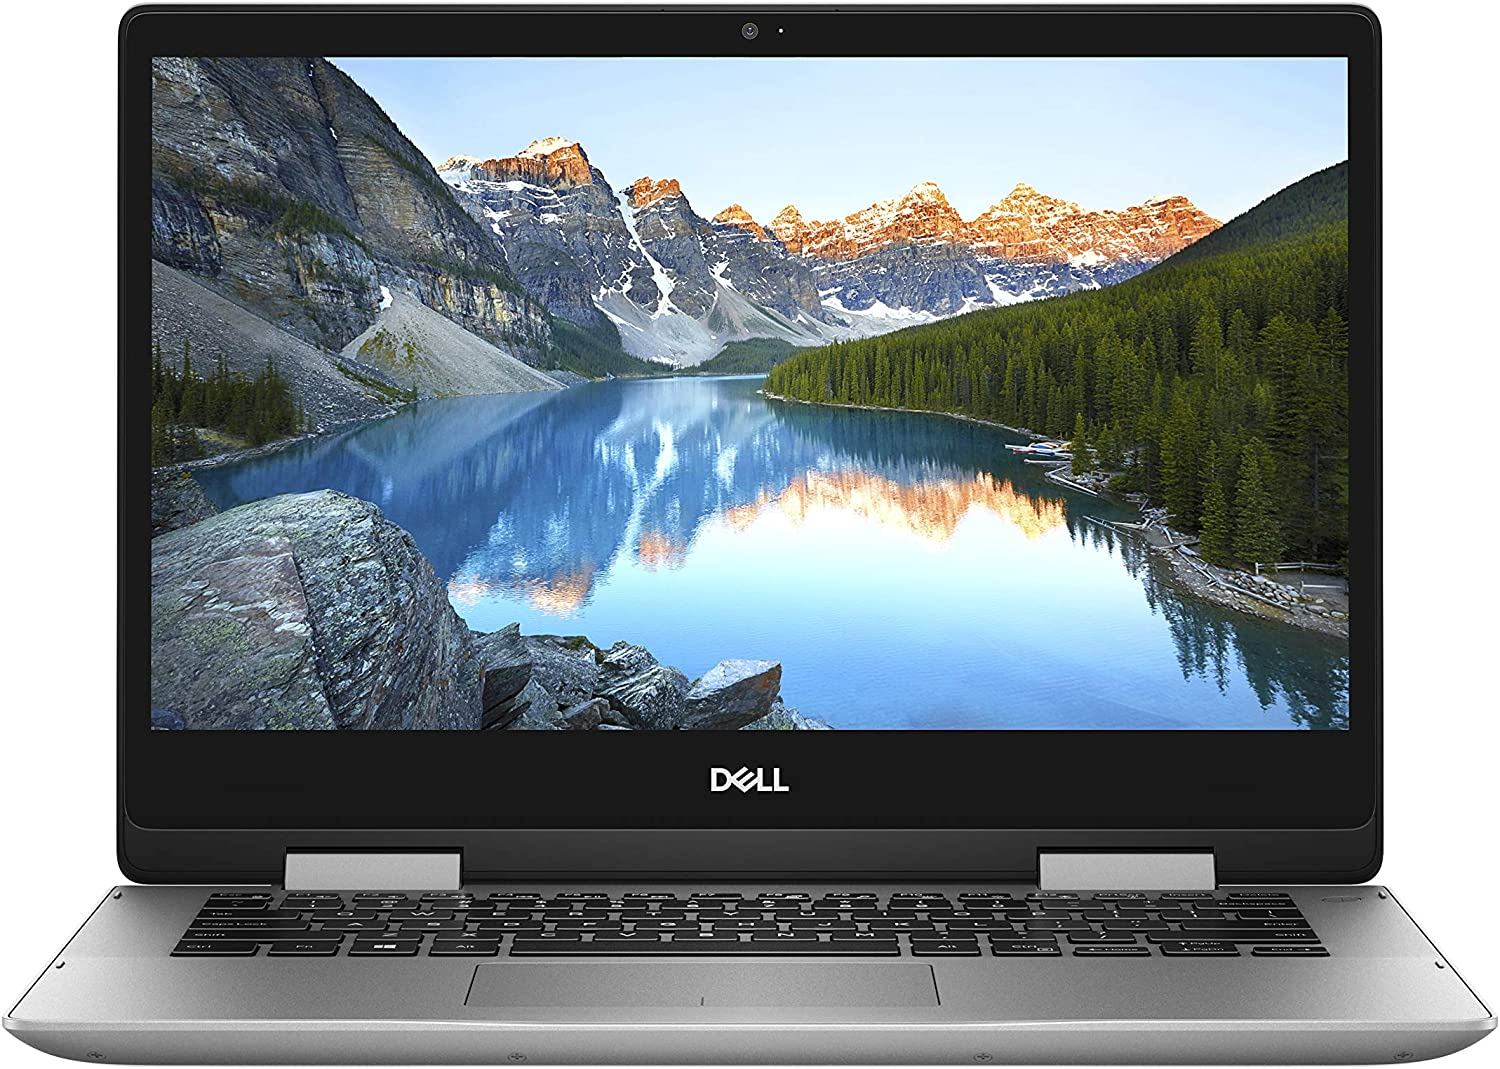 "Dell Inspiron 14 5482 14"" 2-in-1 Touchscreen Laptop Computer, Intel Core i5-8265U, 256GB SSD, 8GB Memory, Intel UHD Graphics 620"